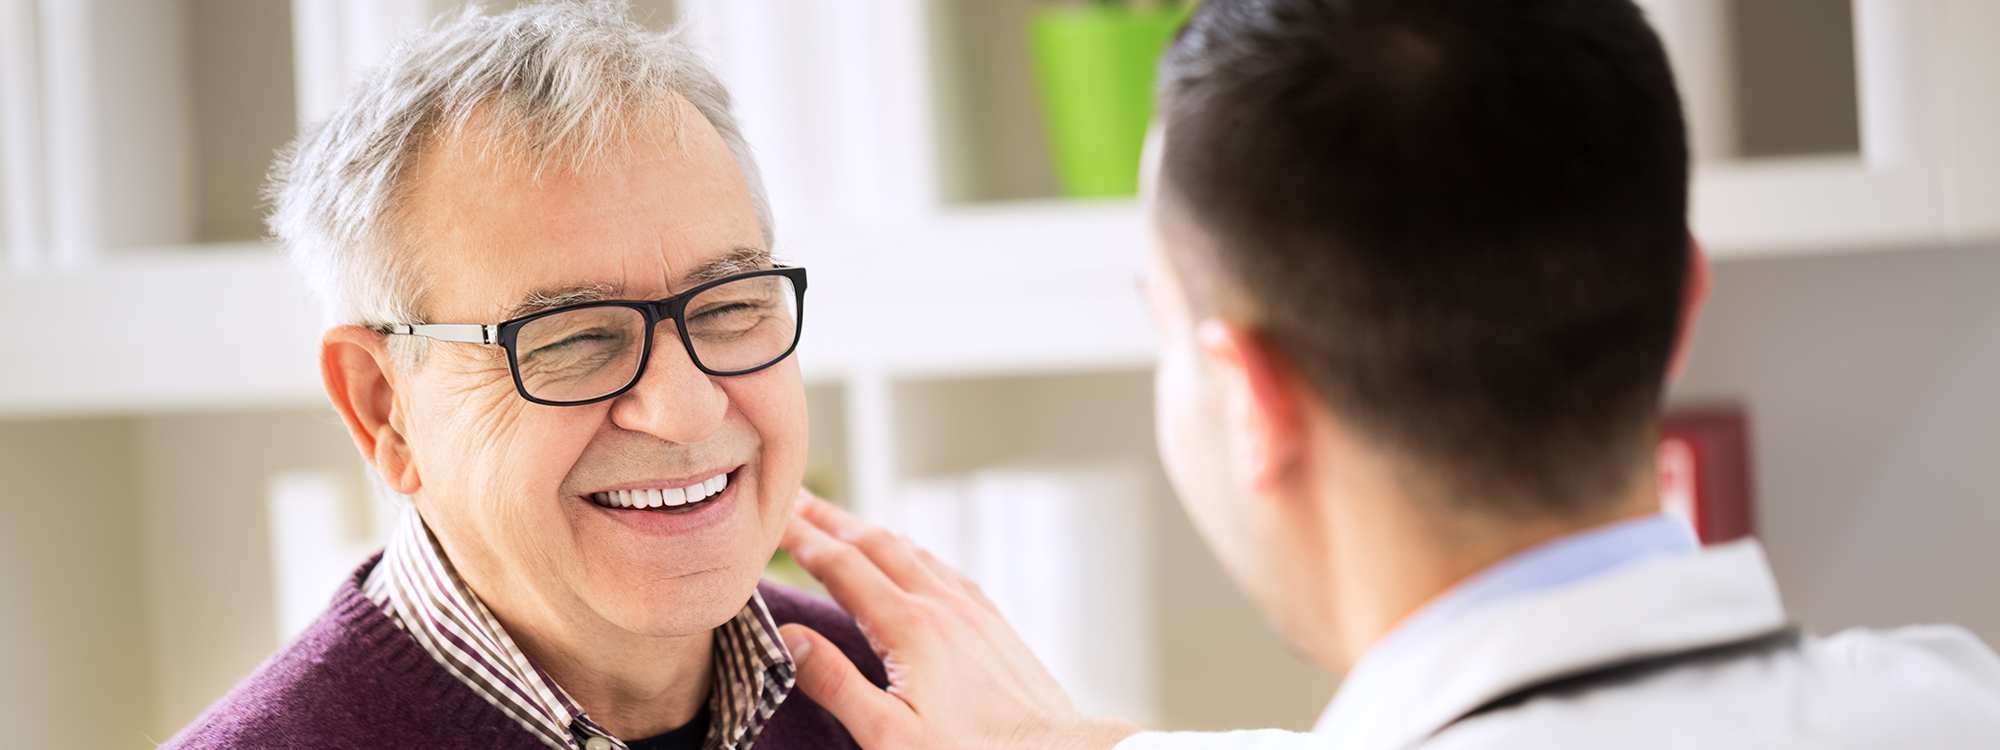 Smiling senior male patient visiting a doctor